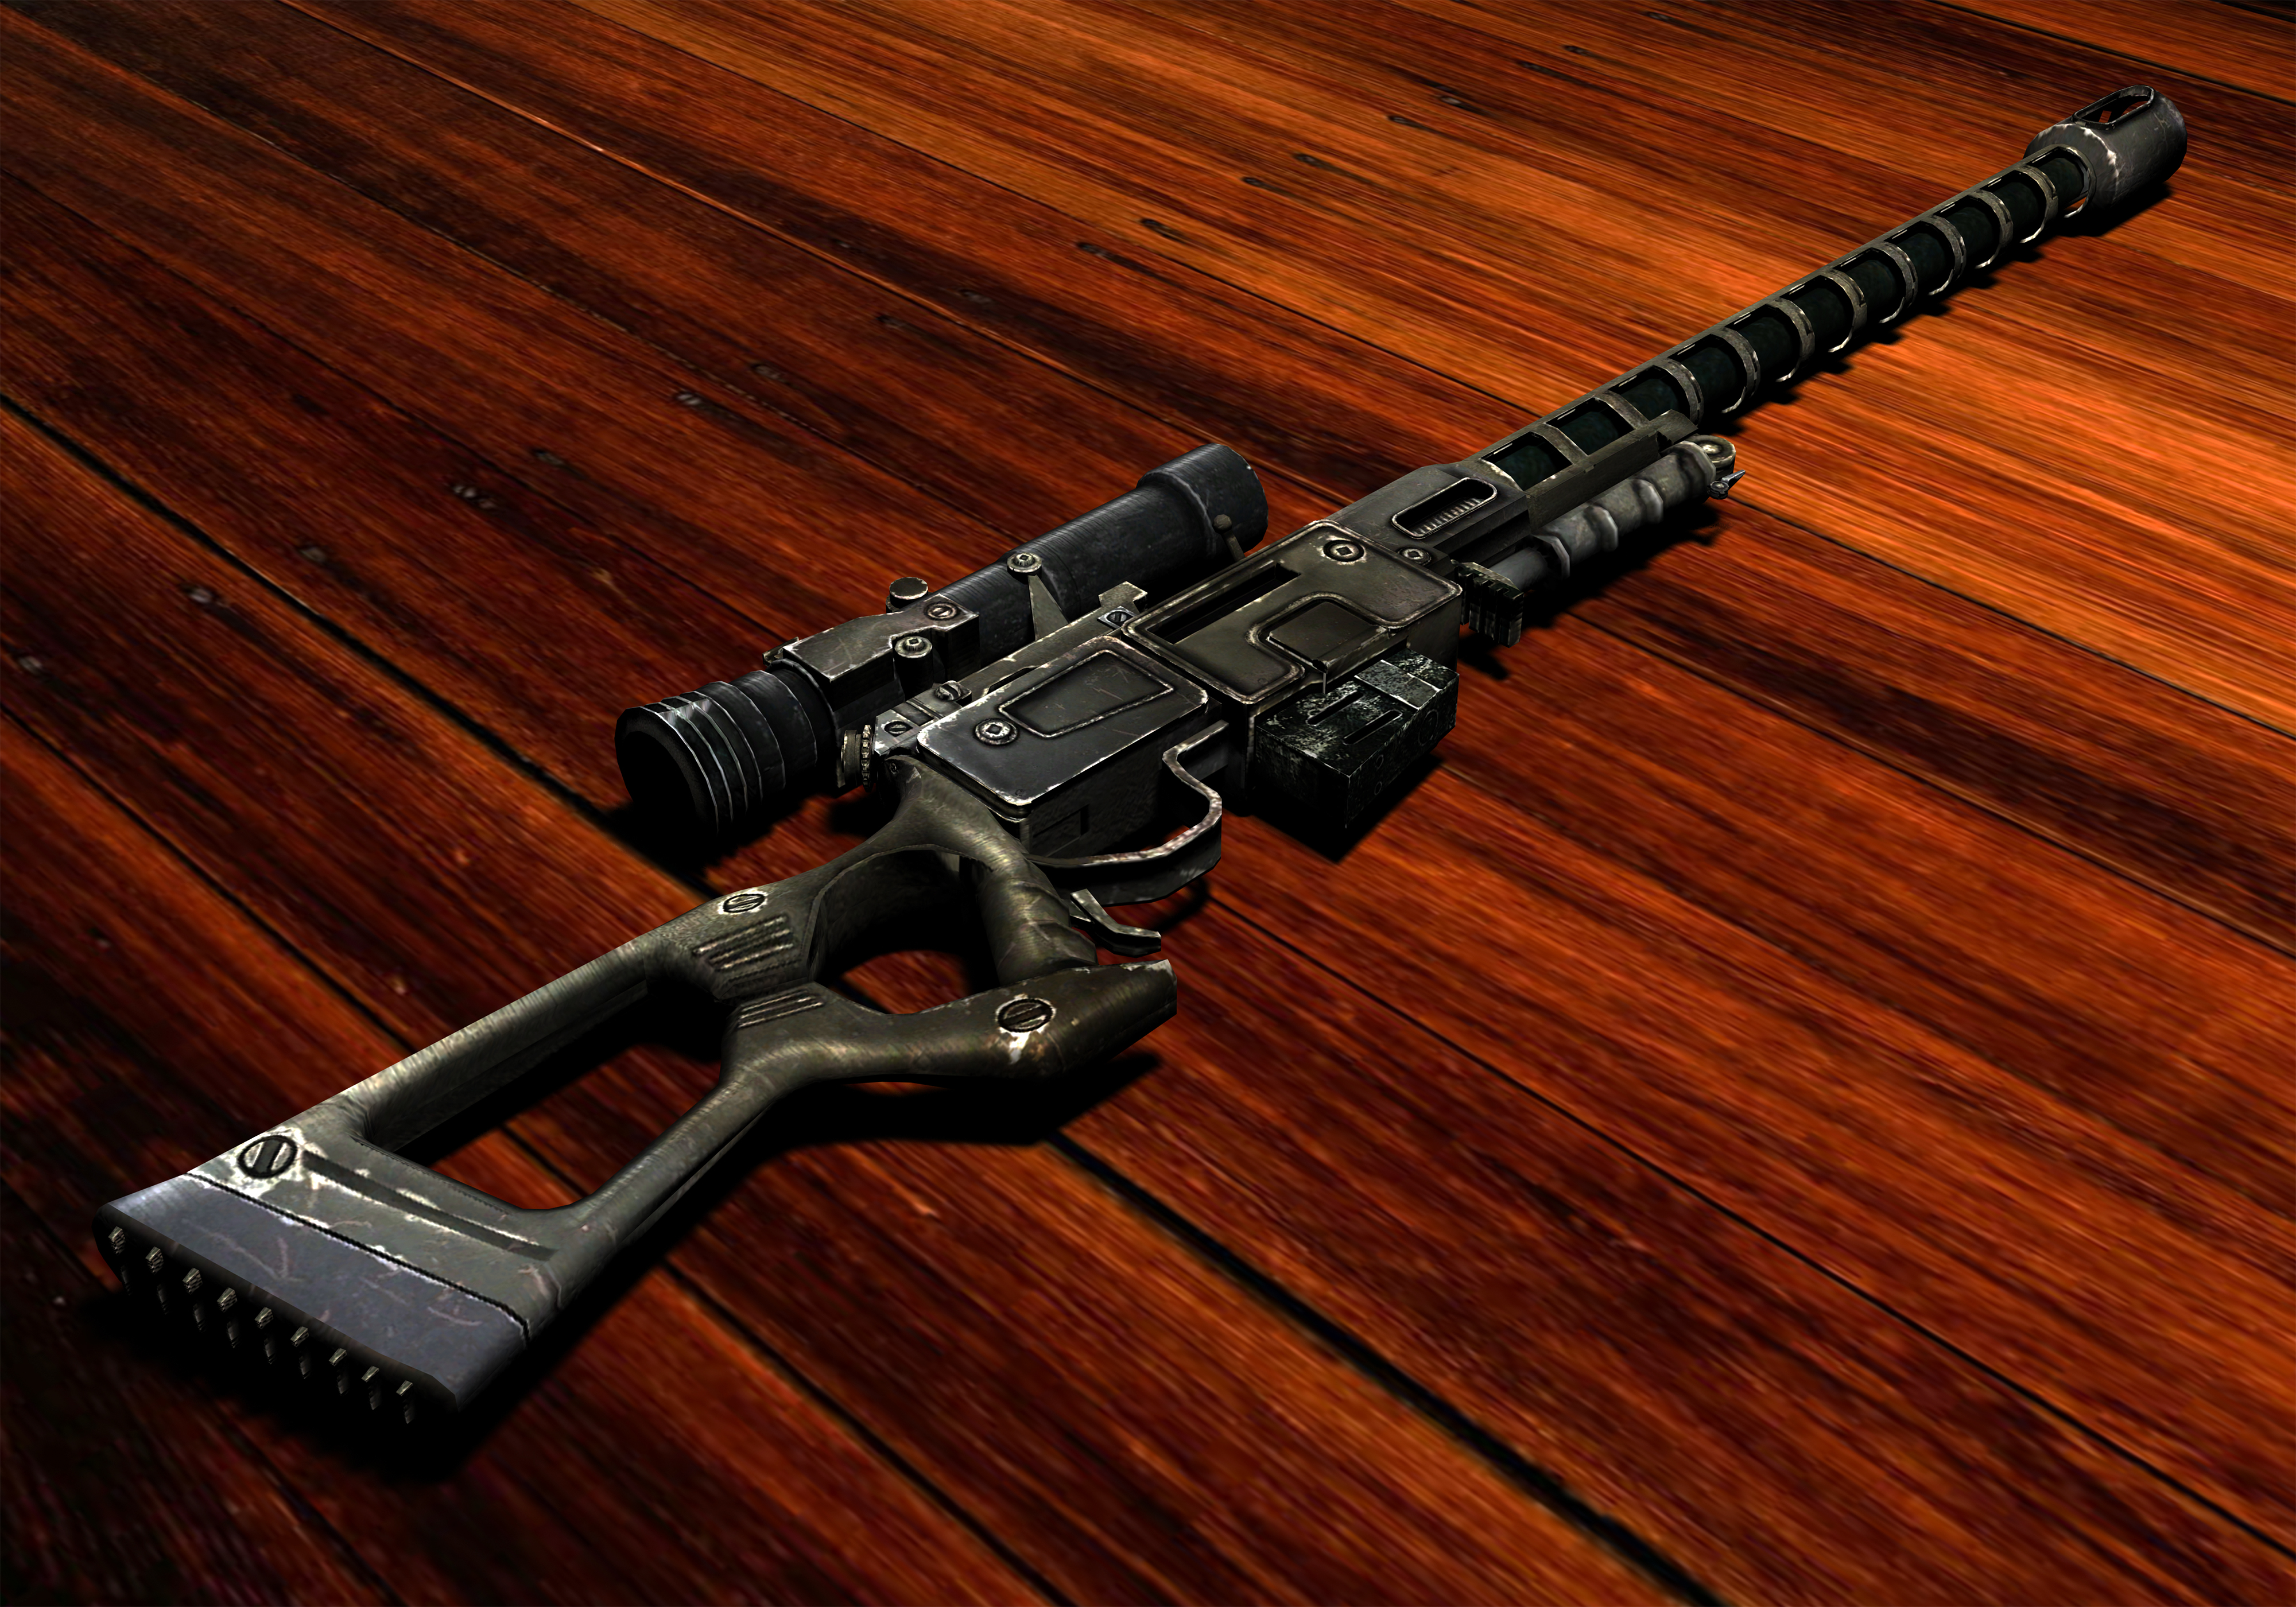 Sniper rifle (Fallout: New Vegas) - The Fallout wiki - Fallout: New Vegas and more